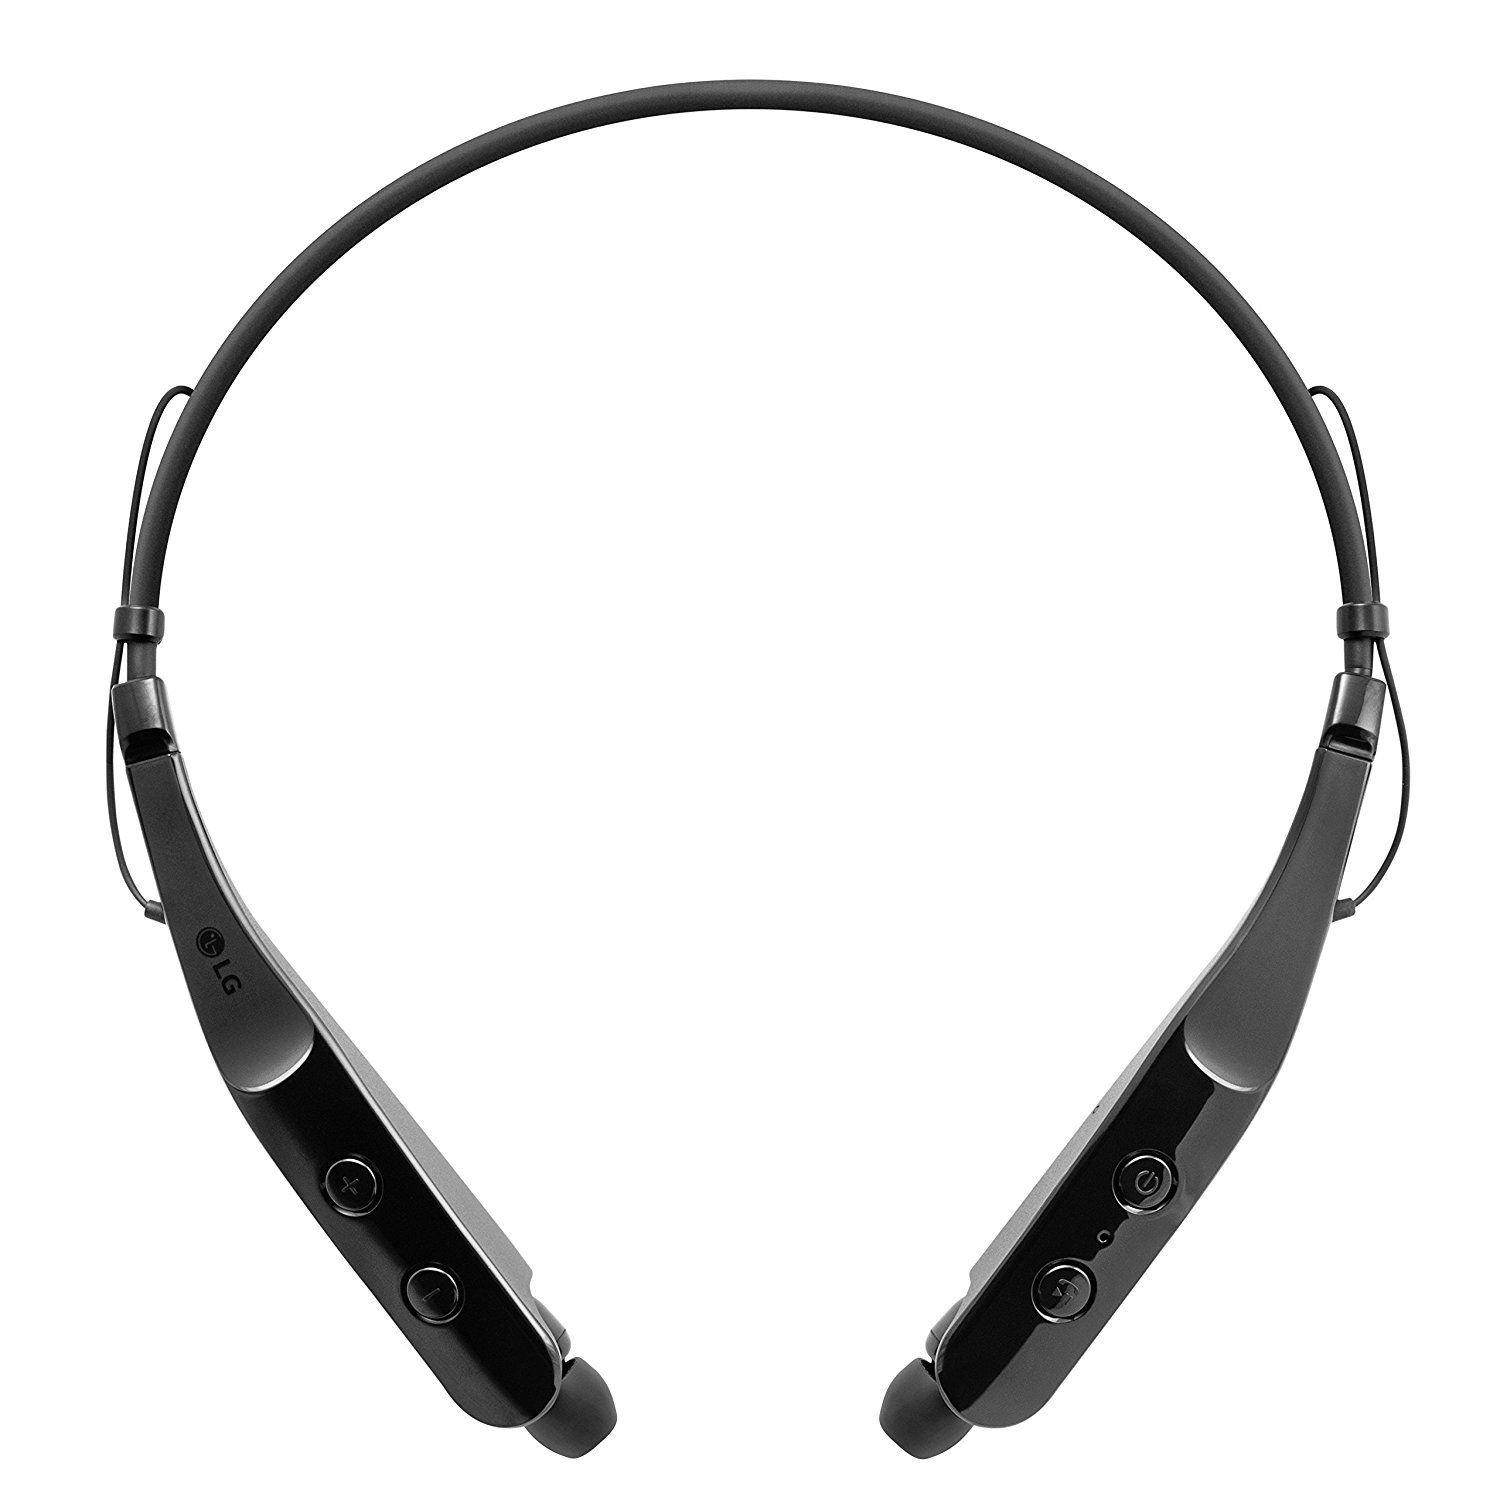 Lg Tone Triumph Hbs 510 Wireless Bluetooth Headset Black Bluetooth Headsets Online At Low Prices Snapdeal India